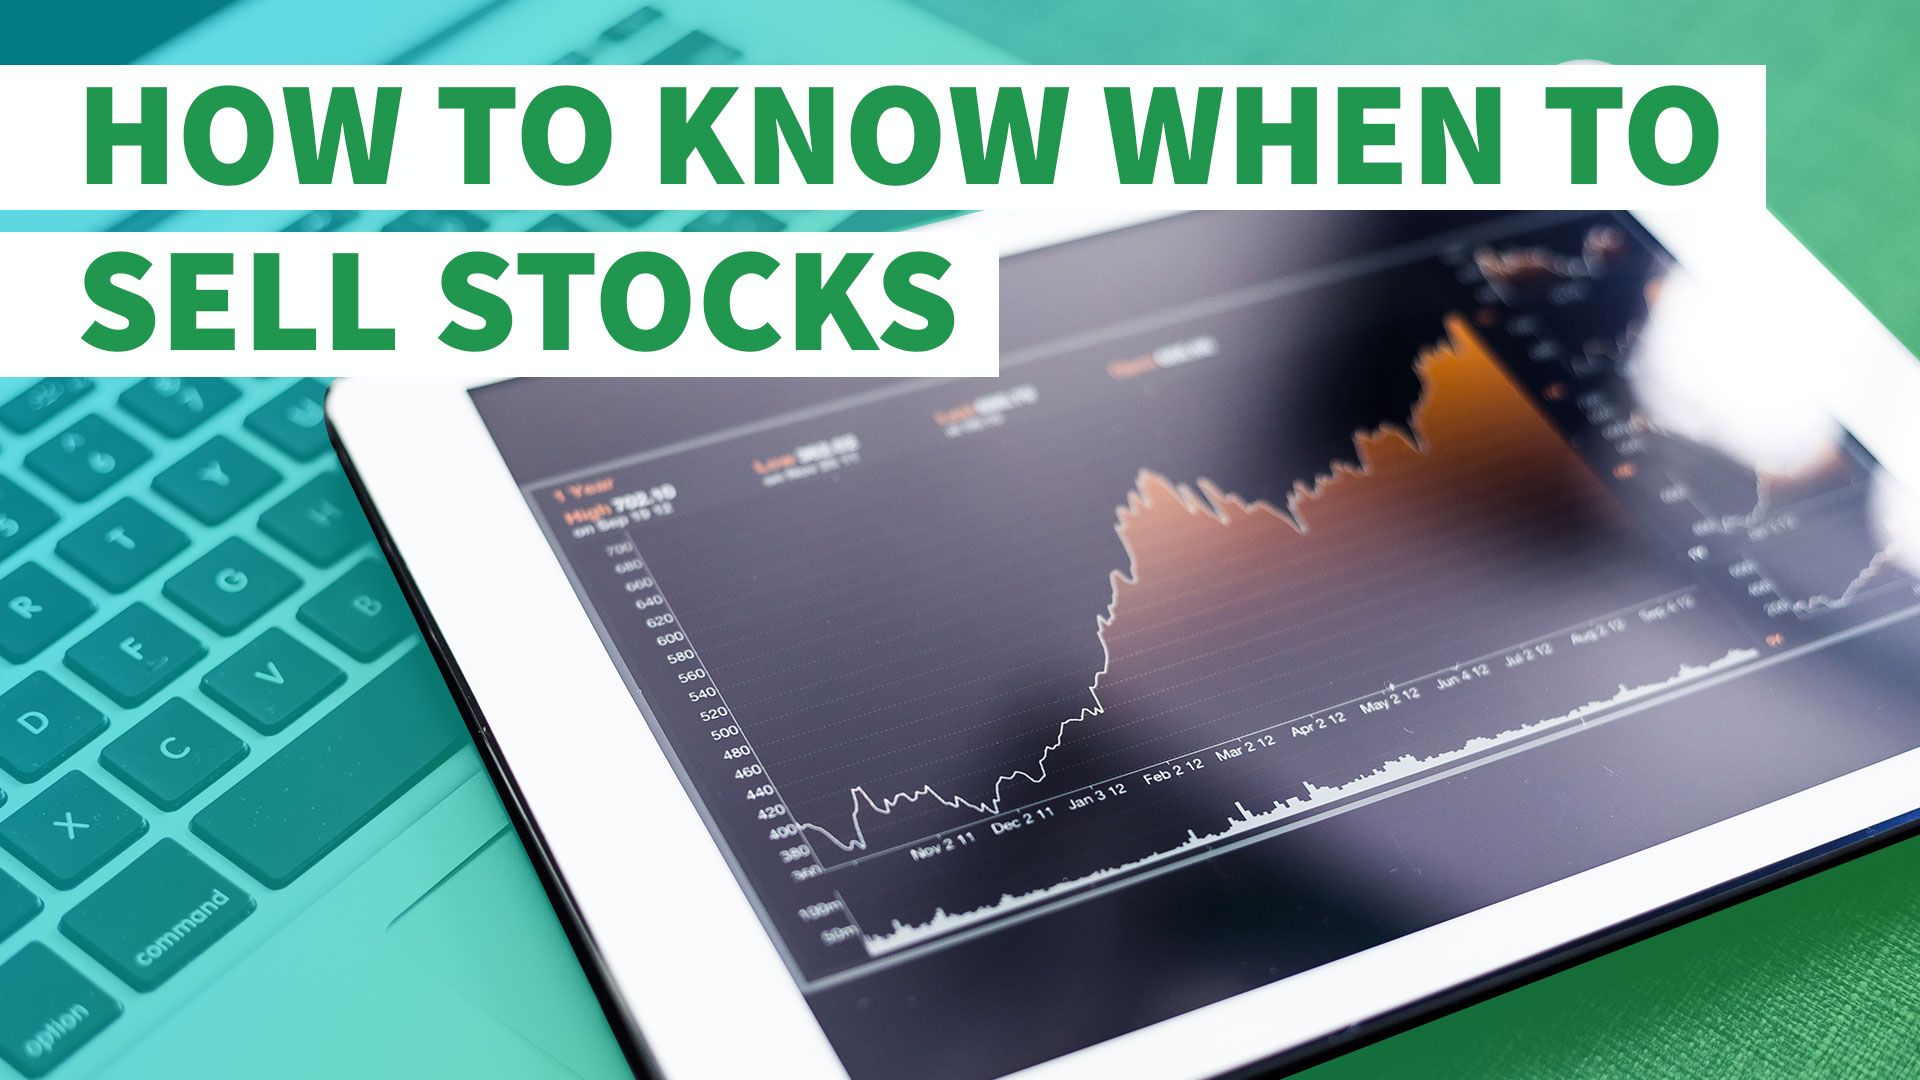 How to sell stocks 63